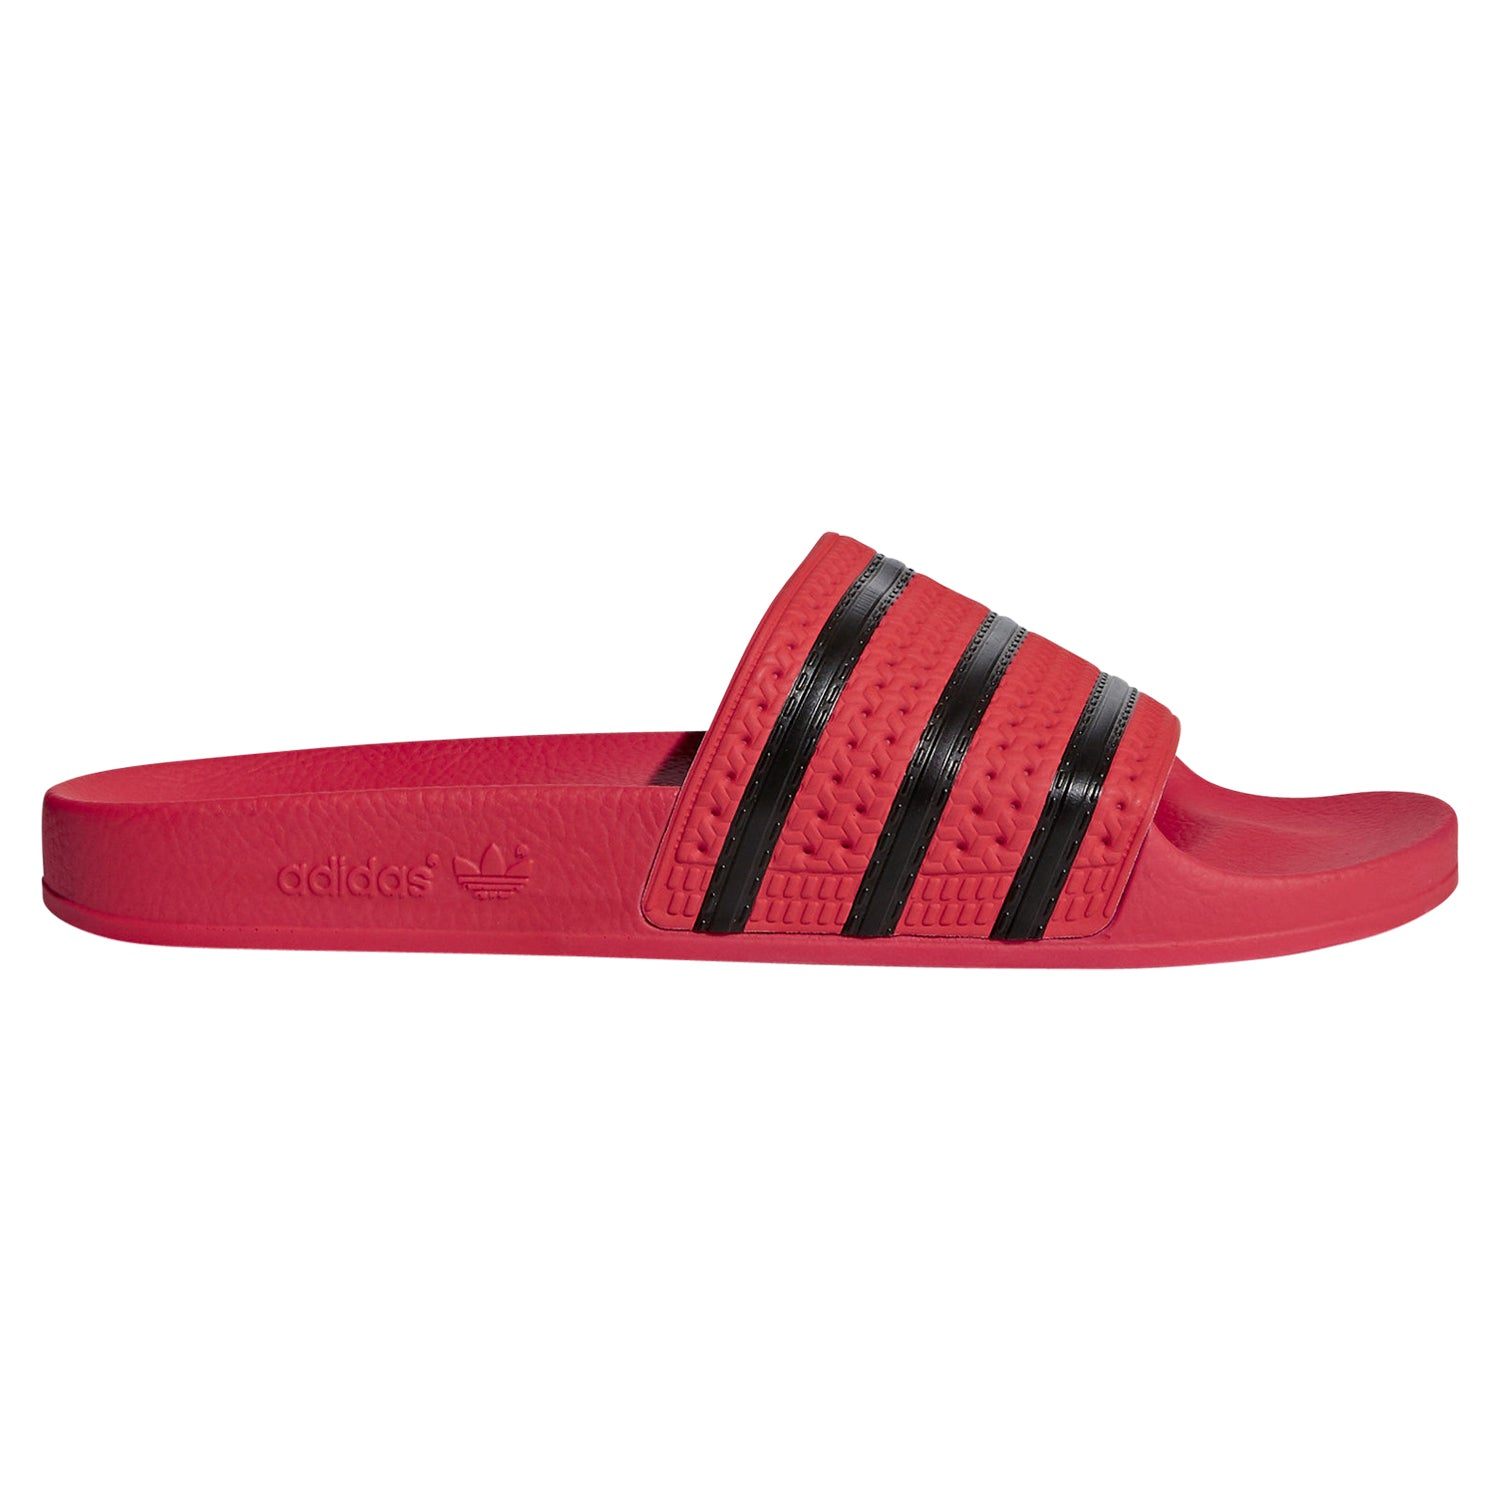 2fc2e7055 ... Top Image · tradesports.co.uk adidas Adilette Slides Red - Main Image  ...